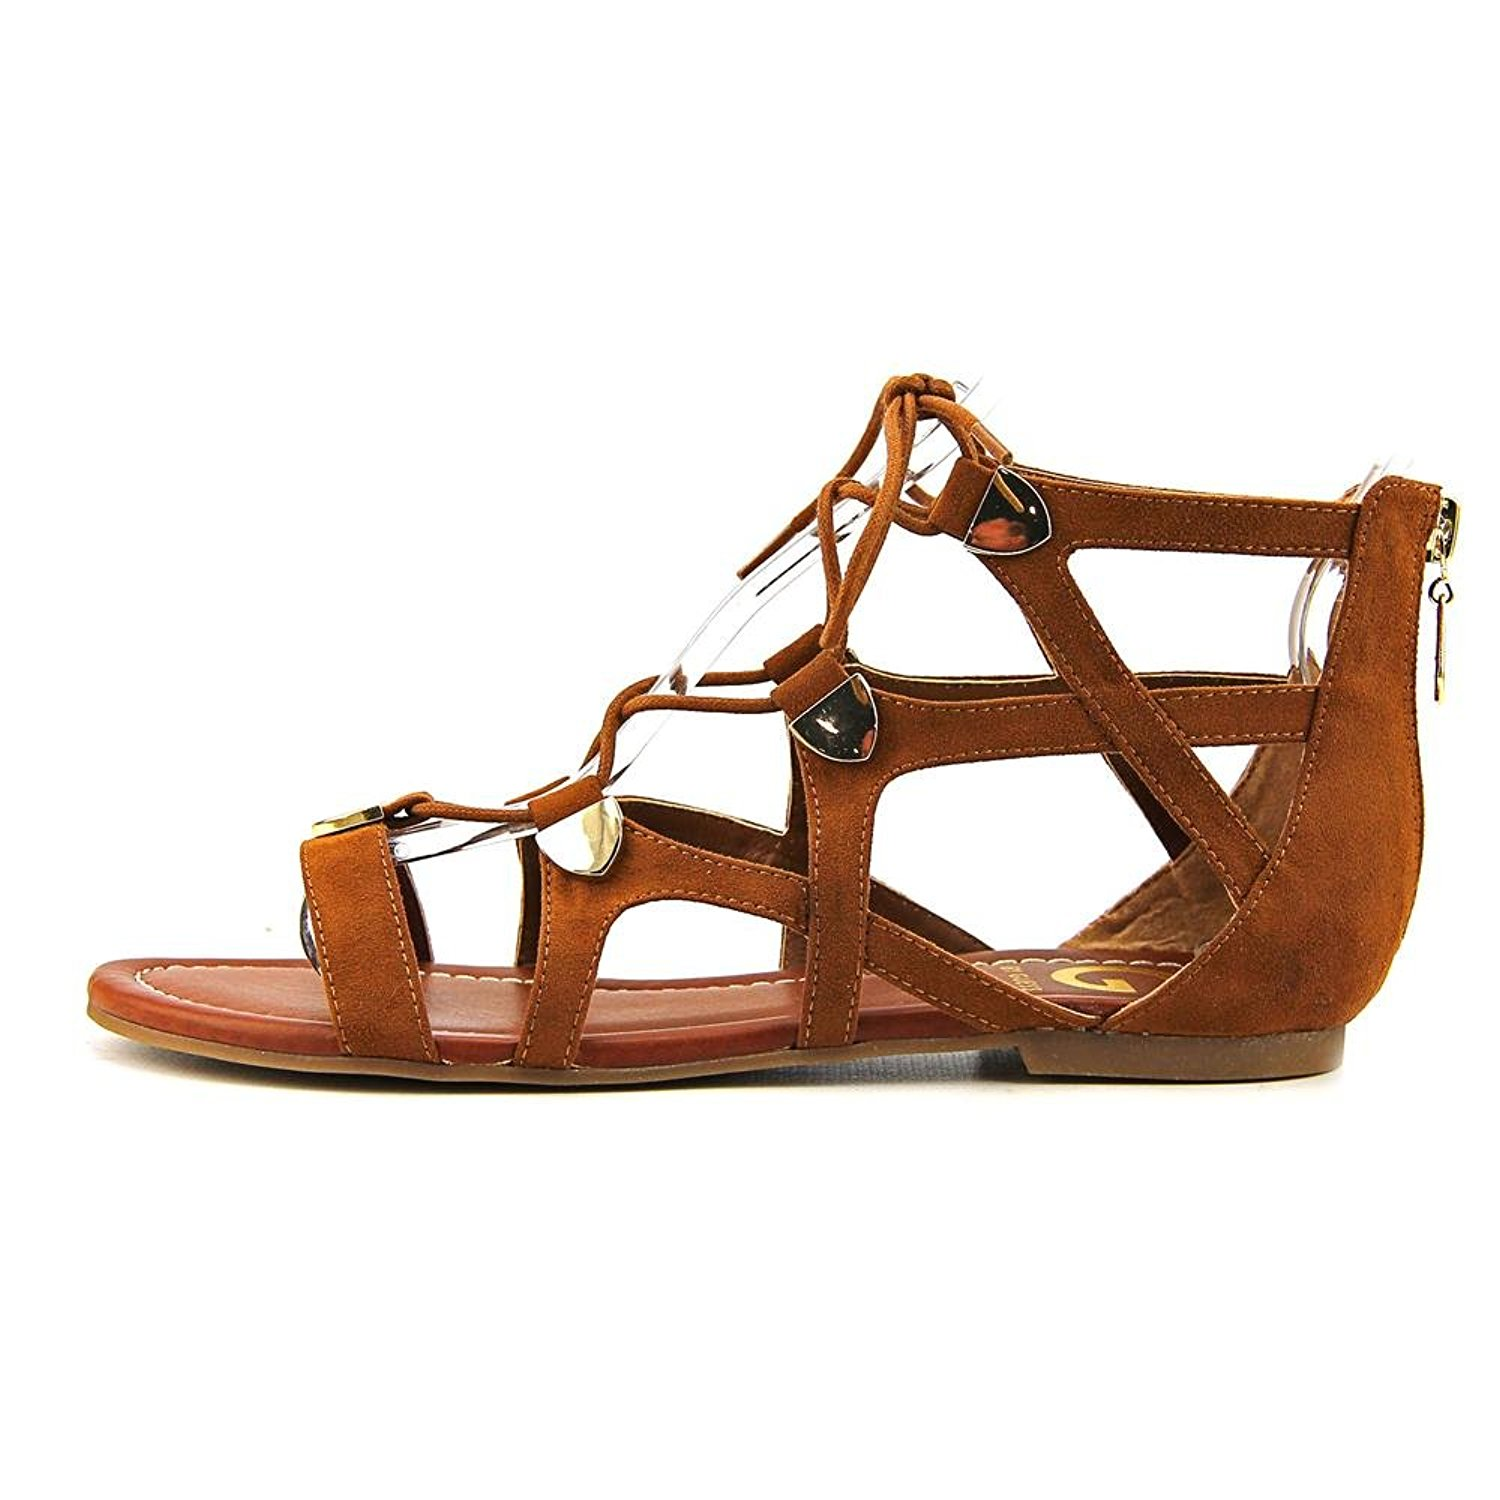 b1235bf8b728e0 G by GUESS Womens Lewy Fabric Open Toe Casual Gladiator Sandals ...